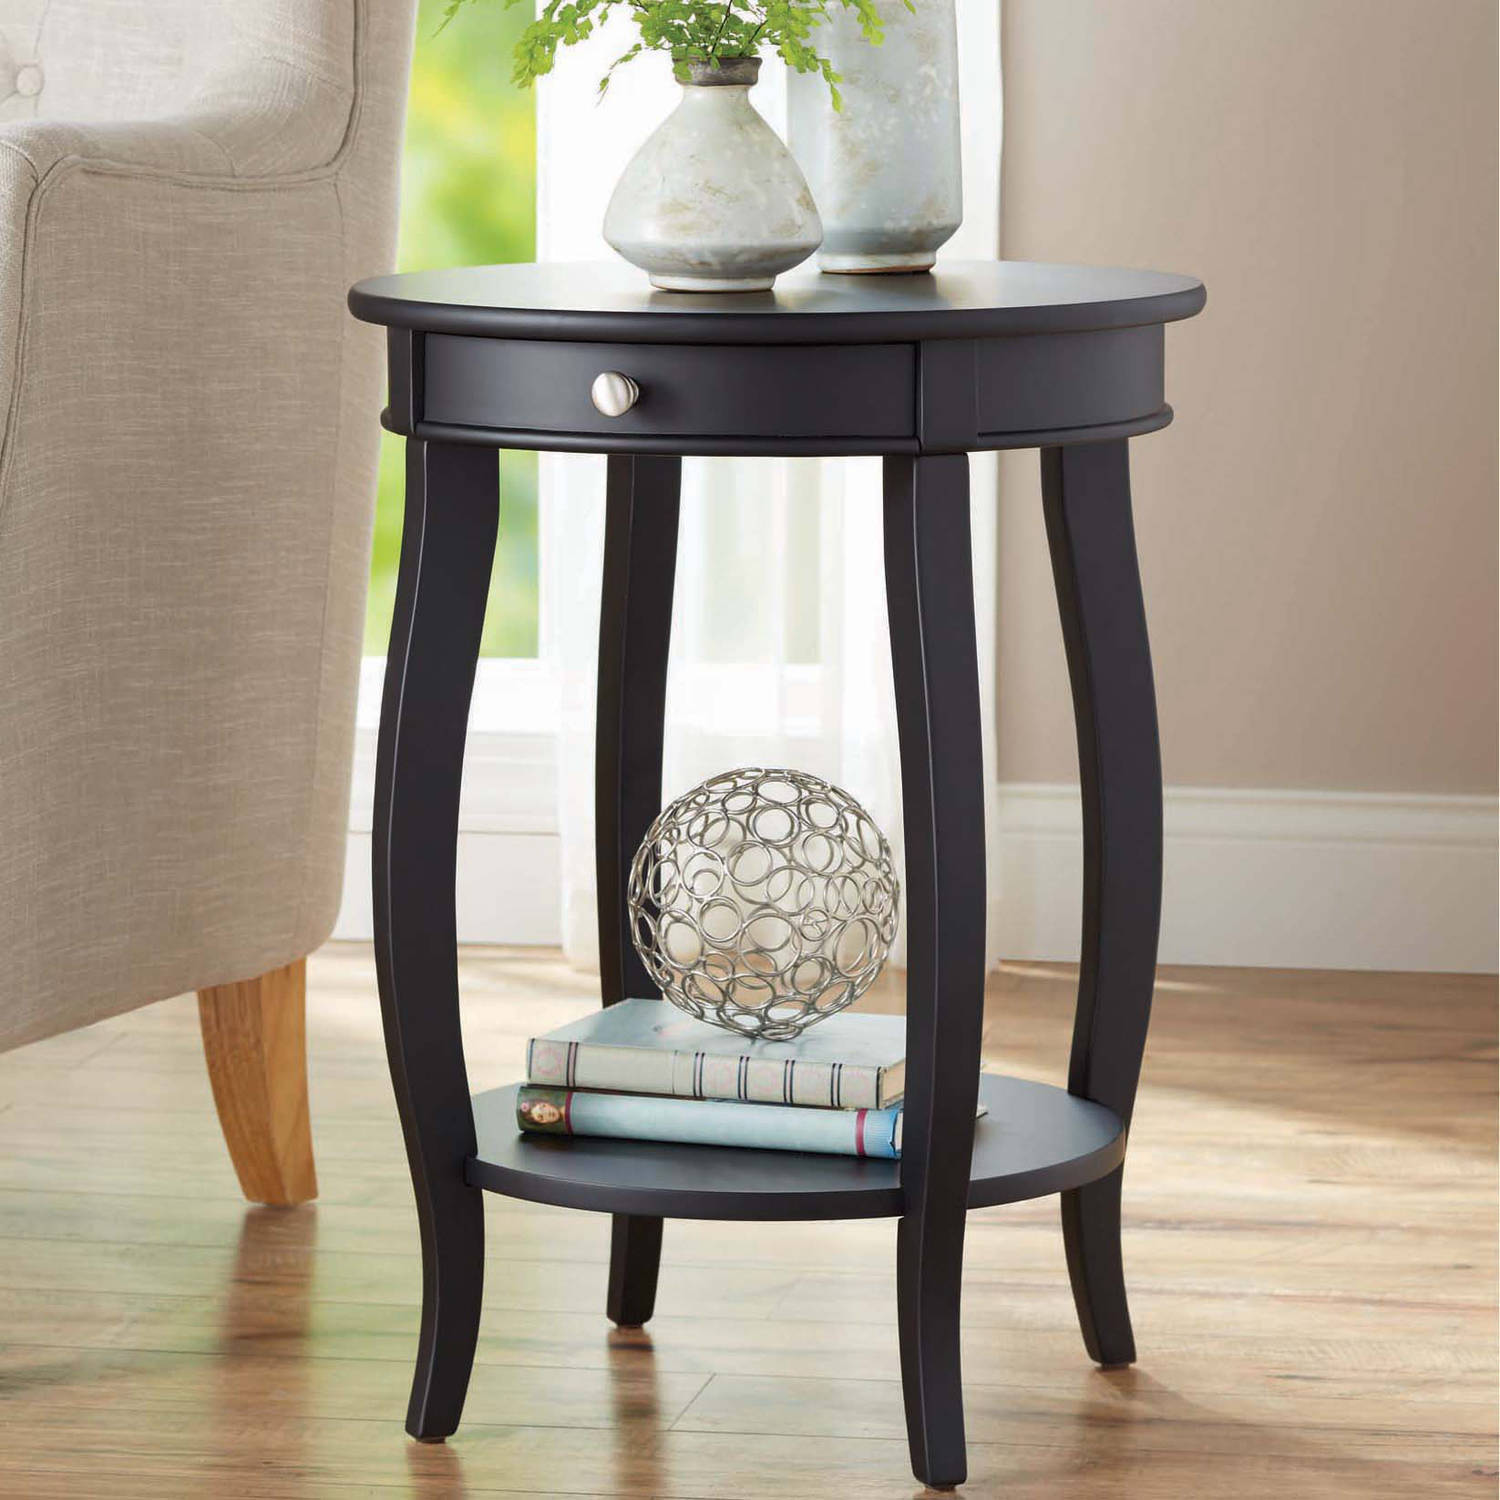 better homes gardens round accent table with drawer multiple unique end tables colors triangle inch plastic tablecloths coffee natural wood small corner whole for weddings solid